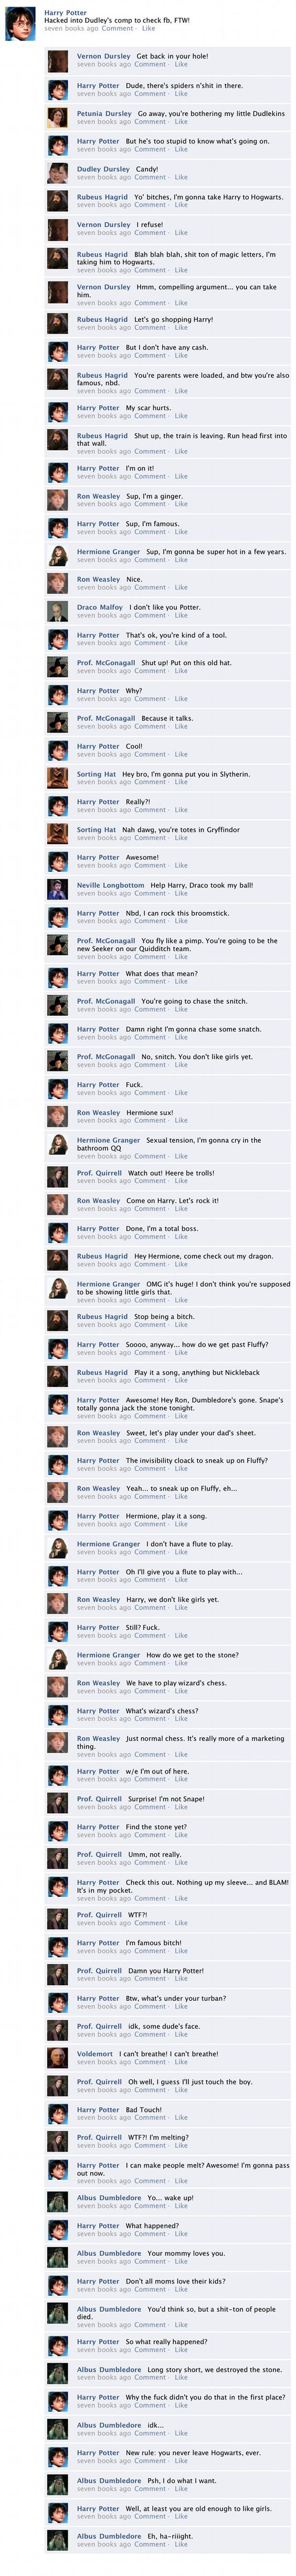 """The Entirety of """"Harry Potter and the Sorcerer's Stone"""" in one Facebook Thread......worthy of some giggles :P"""